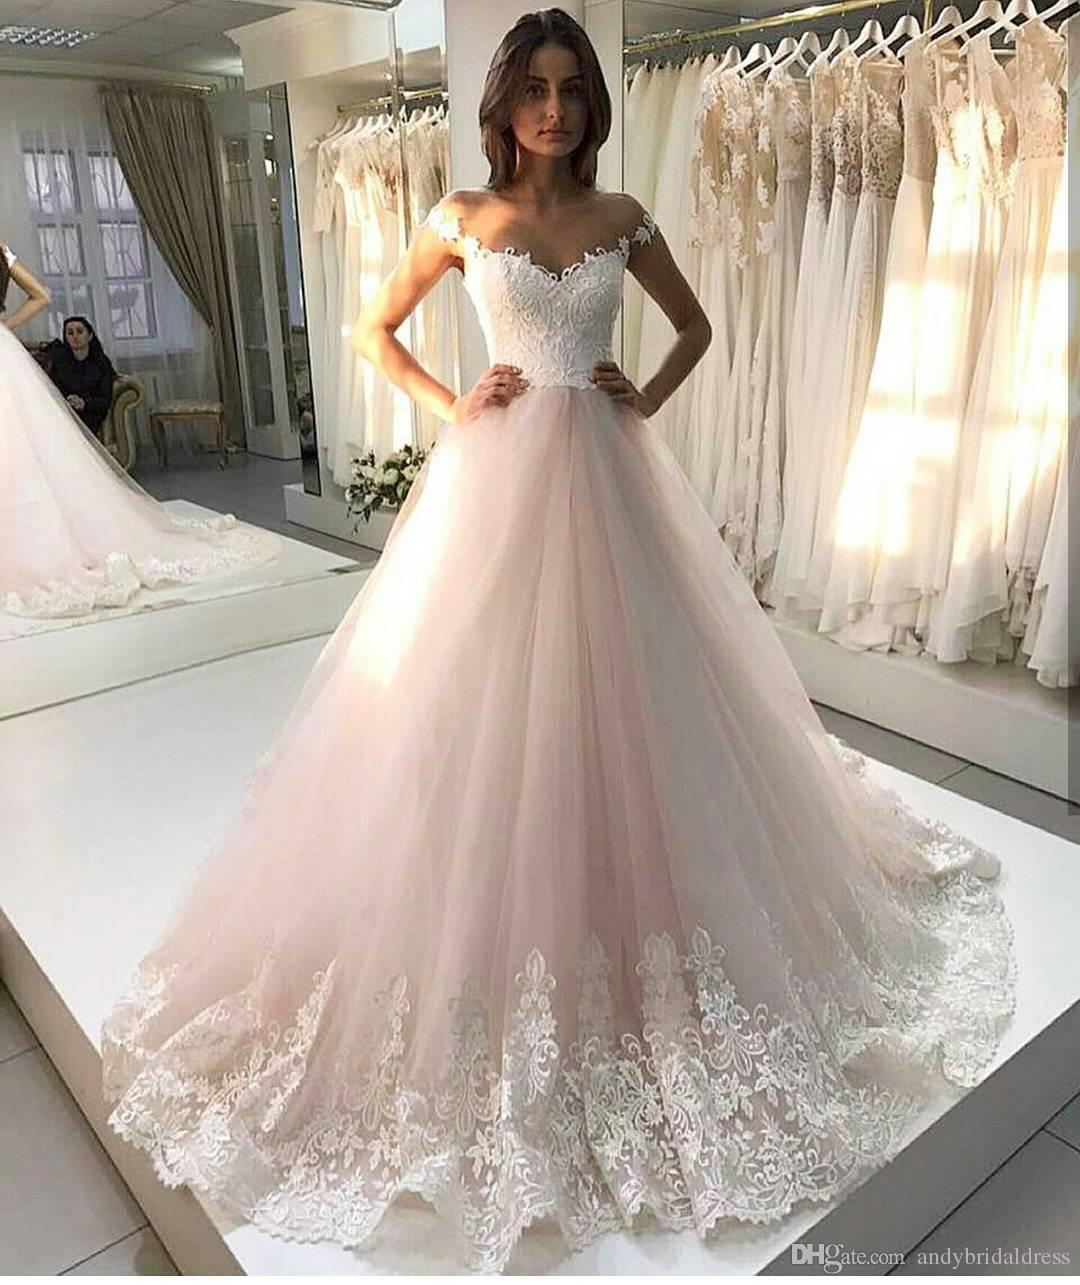 65e127878b Discount 2017 Princess Wedding Dress Blush Bride Gown Lace Appliqued Trim  Vintage Wedding Gowns Bridal Dresses Custom Made A Line Princess Wedding  Dresses A ...